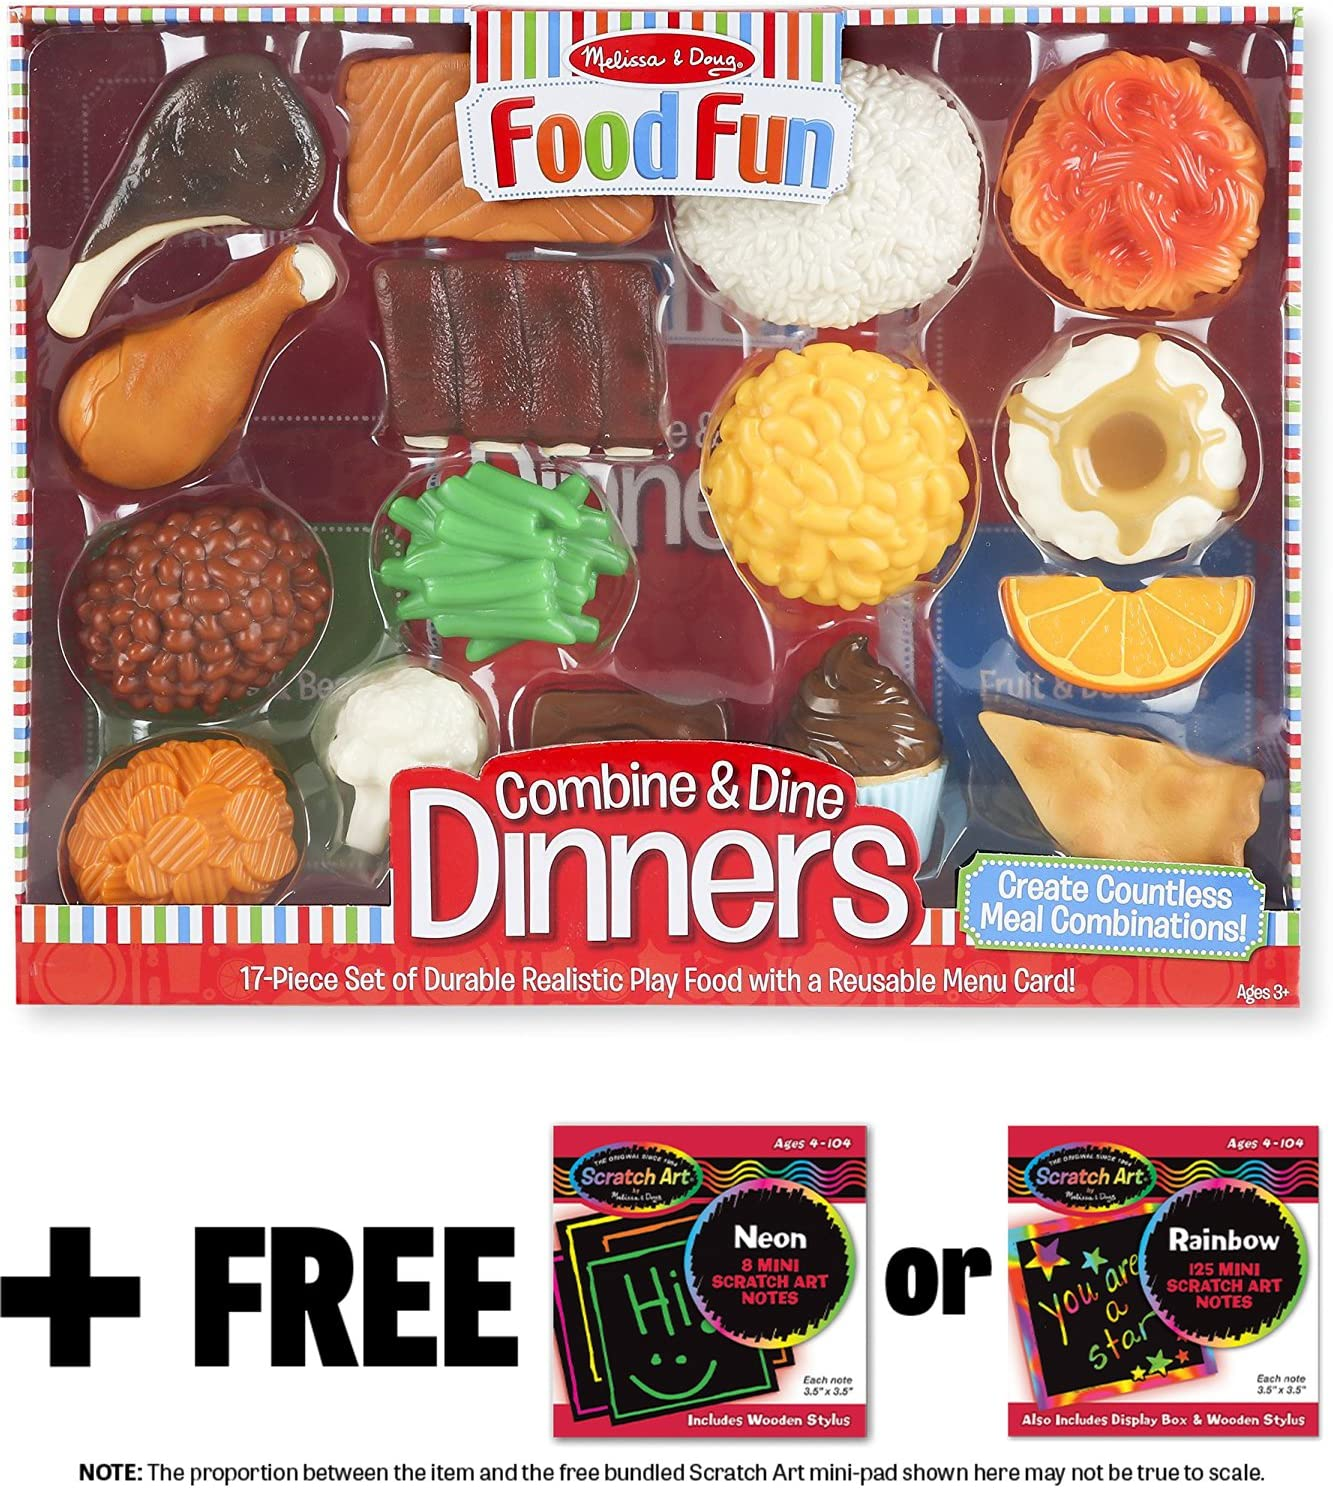 Melissa & Doug Combine & Dine Dinners: Food Fun Toy Play Set & 1 Scratch Art Mini-Pad Bundle (08267)